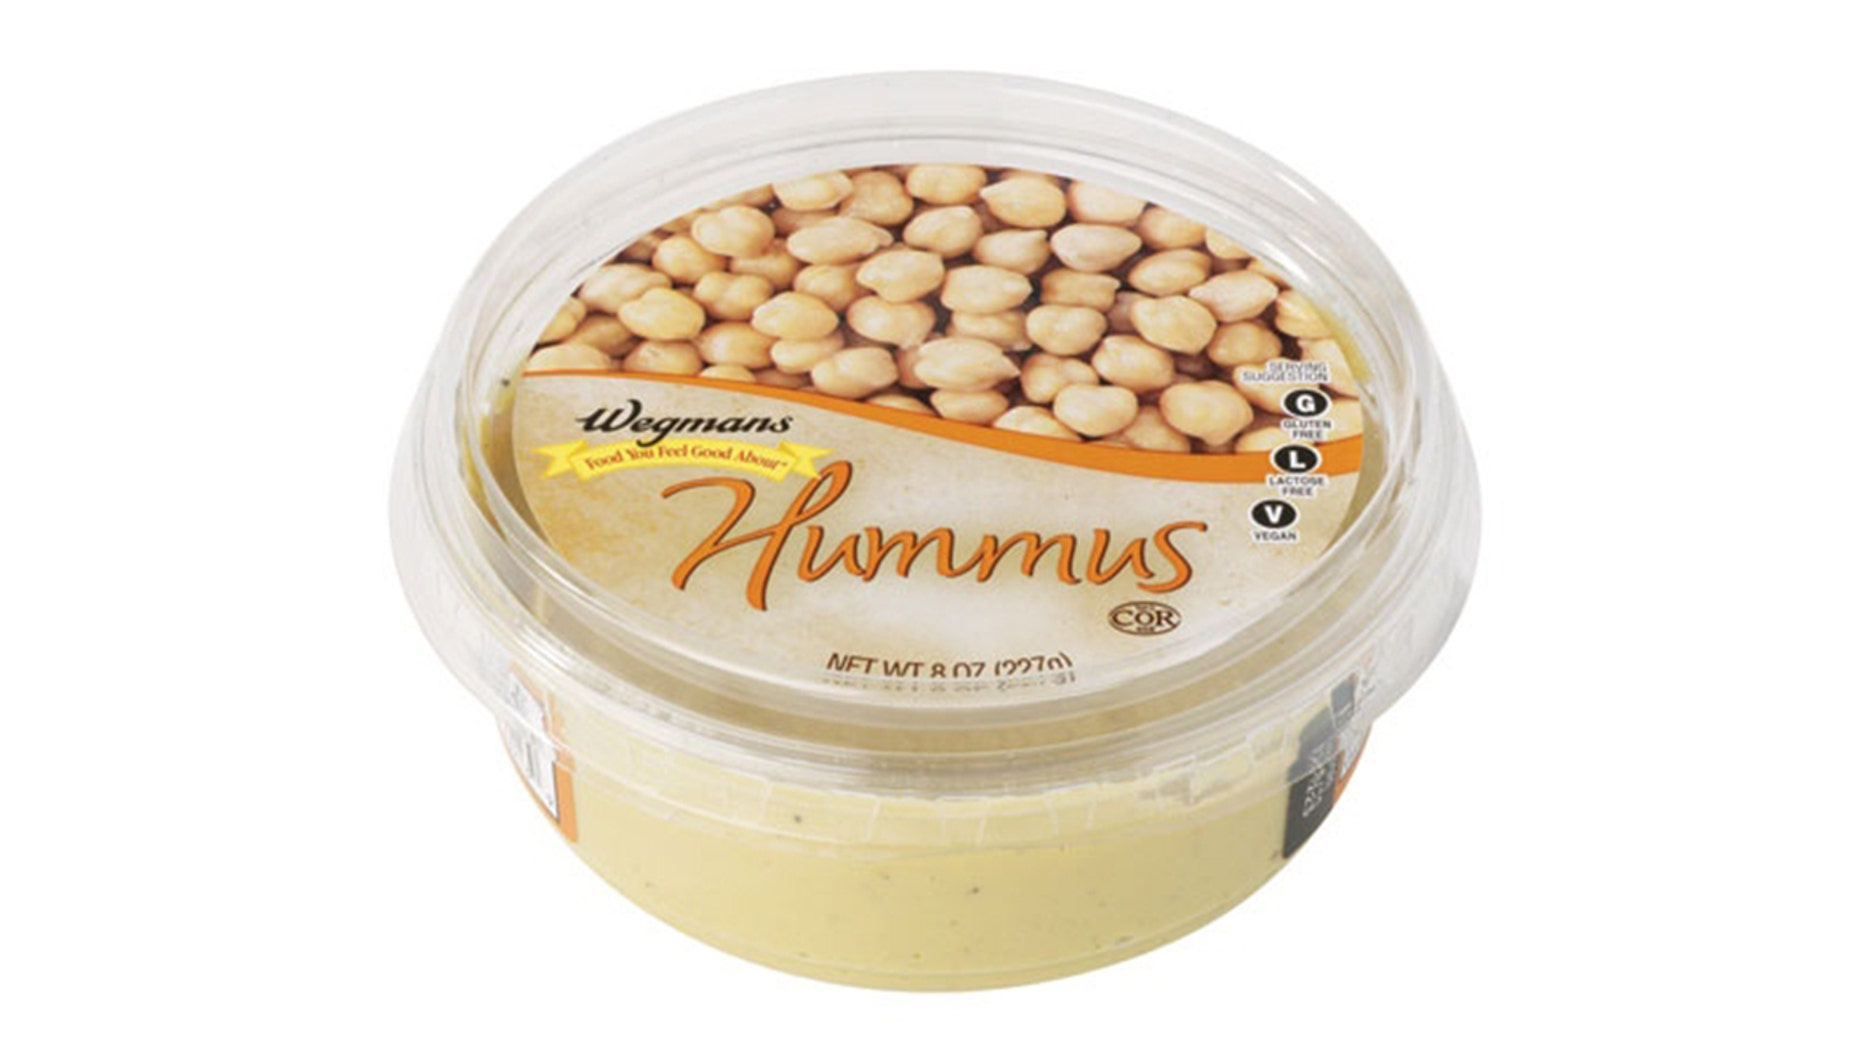 Wegmans is recalling its own hummus products, the company said Friday.